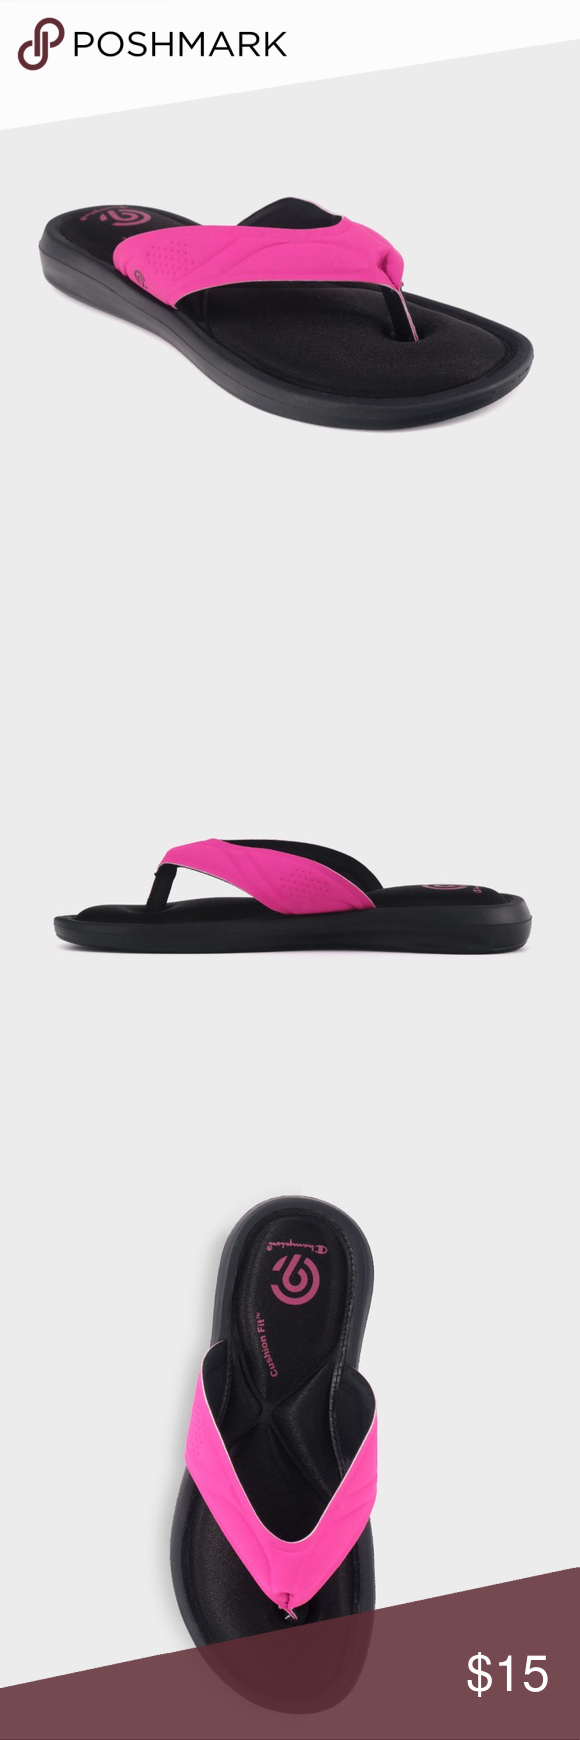 e5b79d0e005c0 Girls  Memory Foam Flip Flop Sandals Champion® Add some comfy color to her  daily